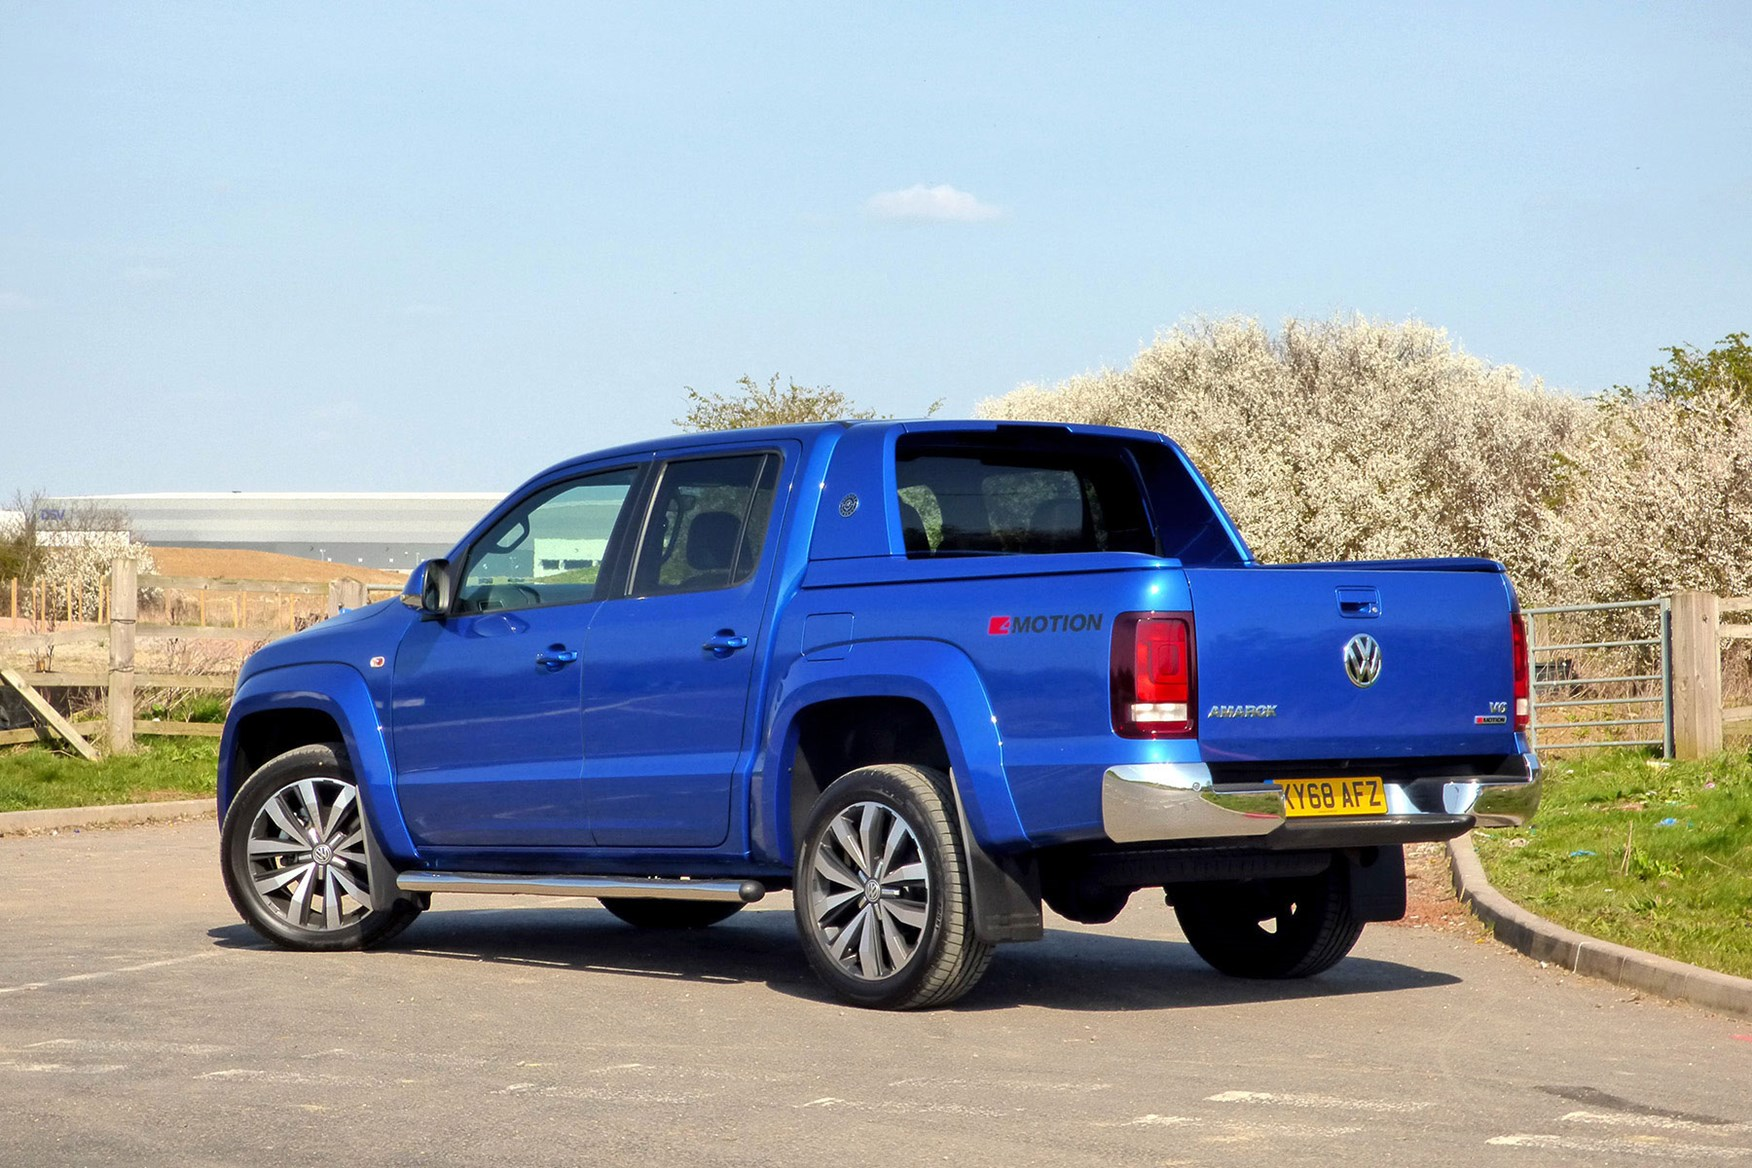 VW Amarok V6 Aventura 258hp review - rear view, blue